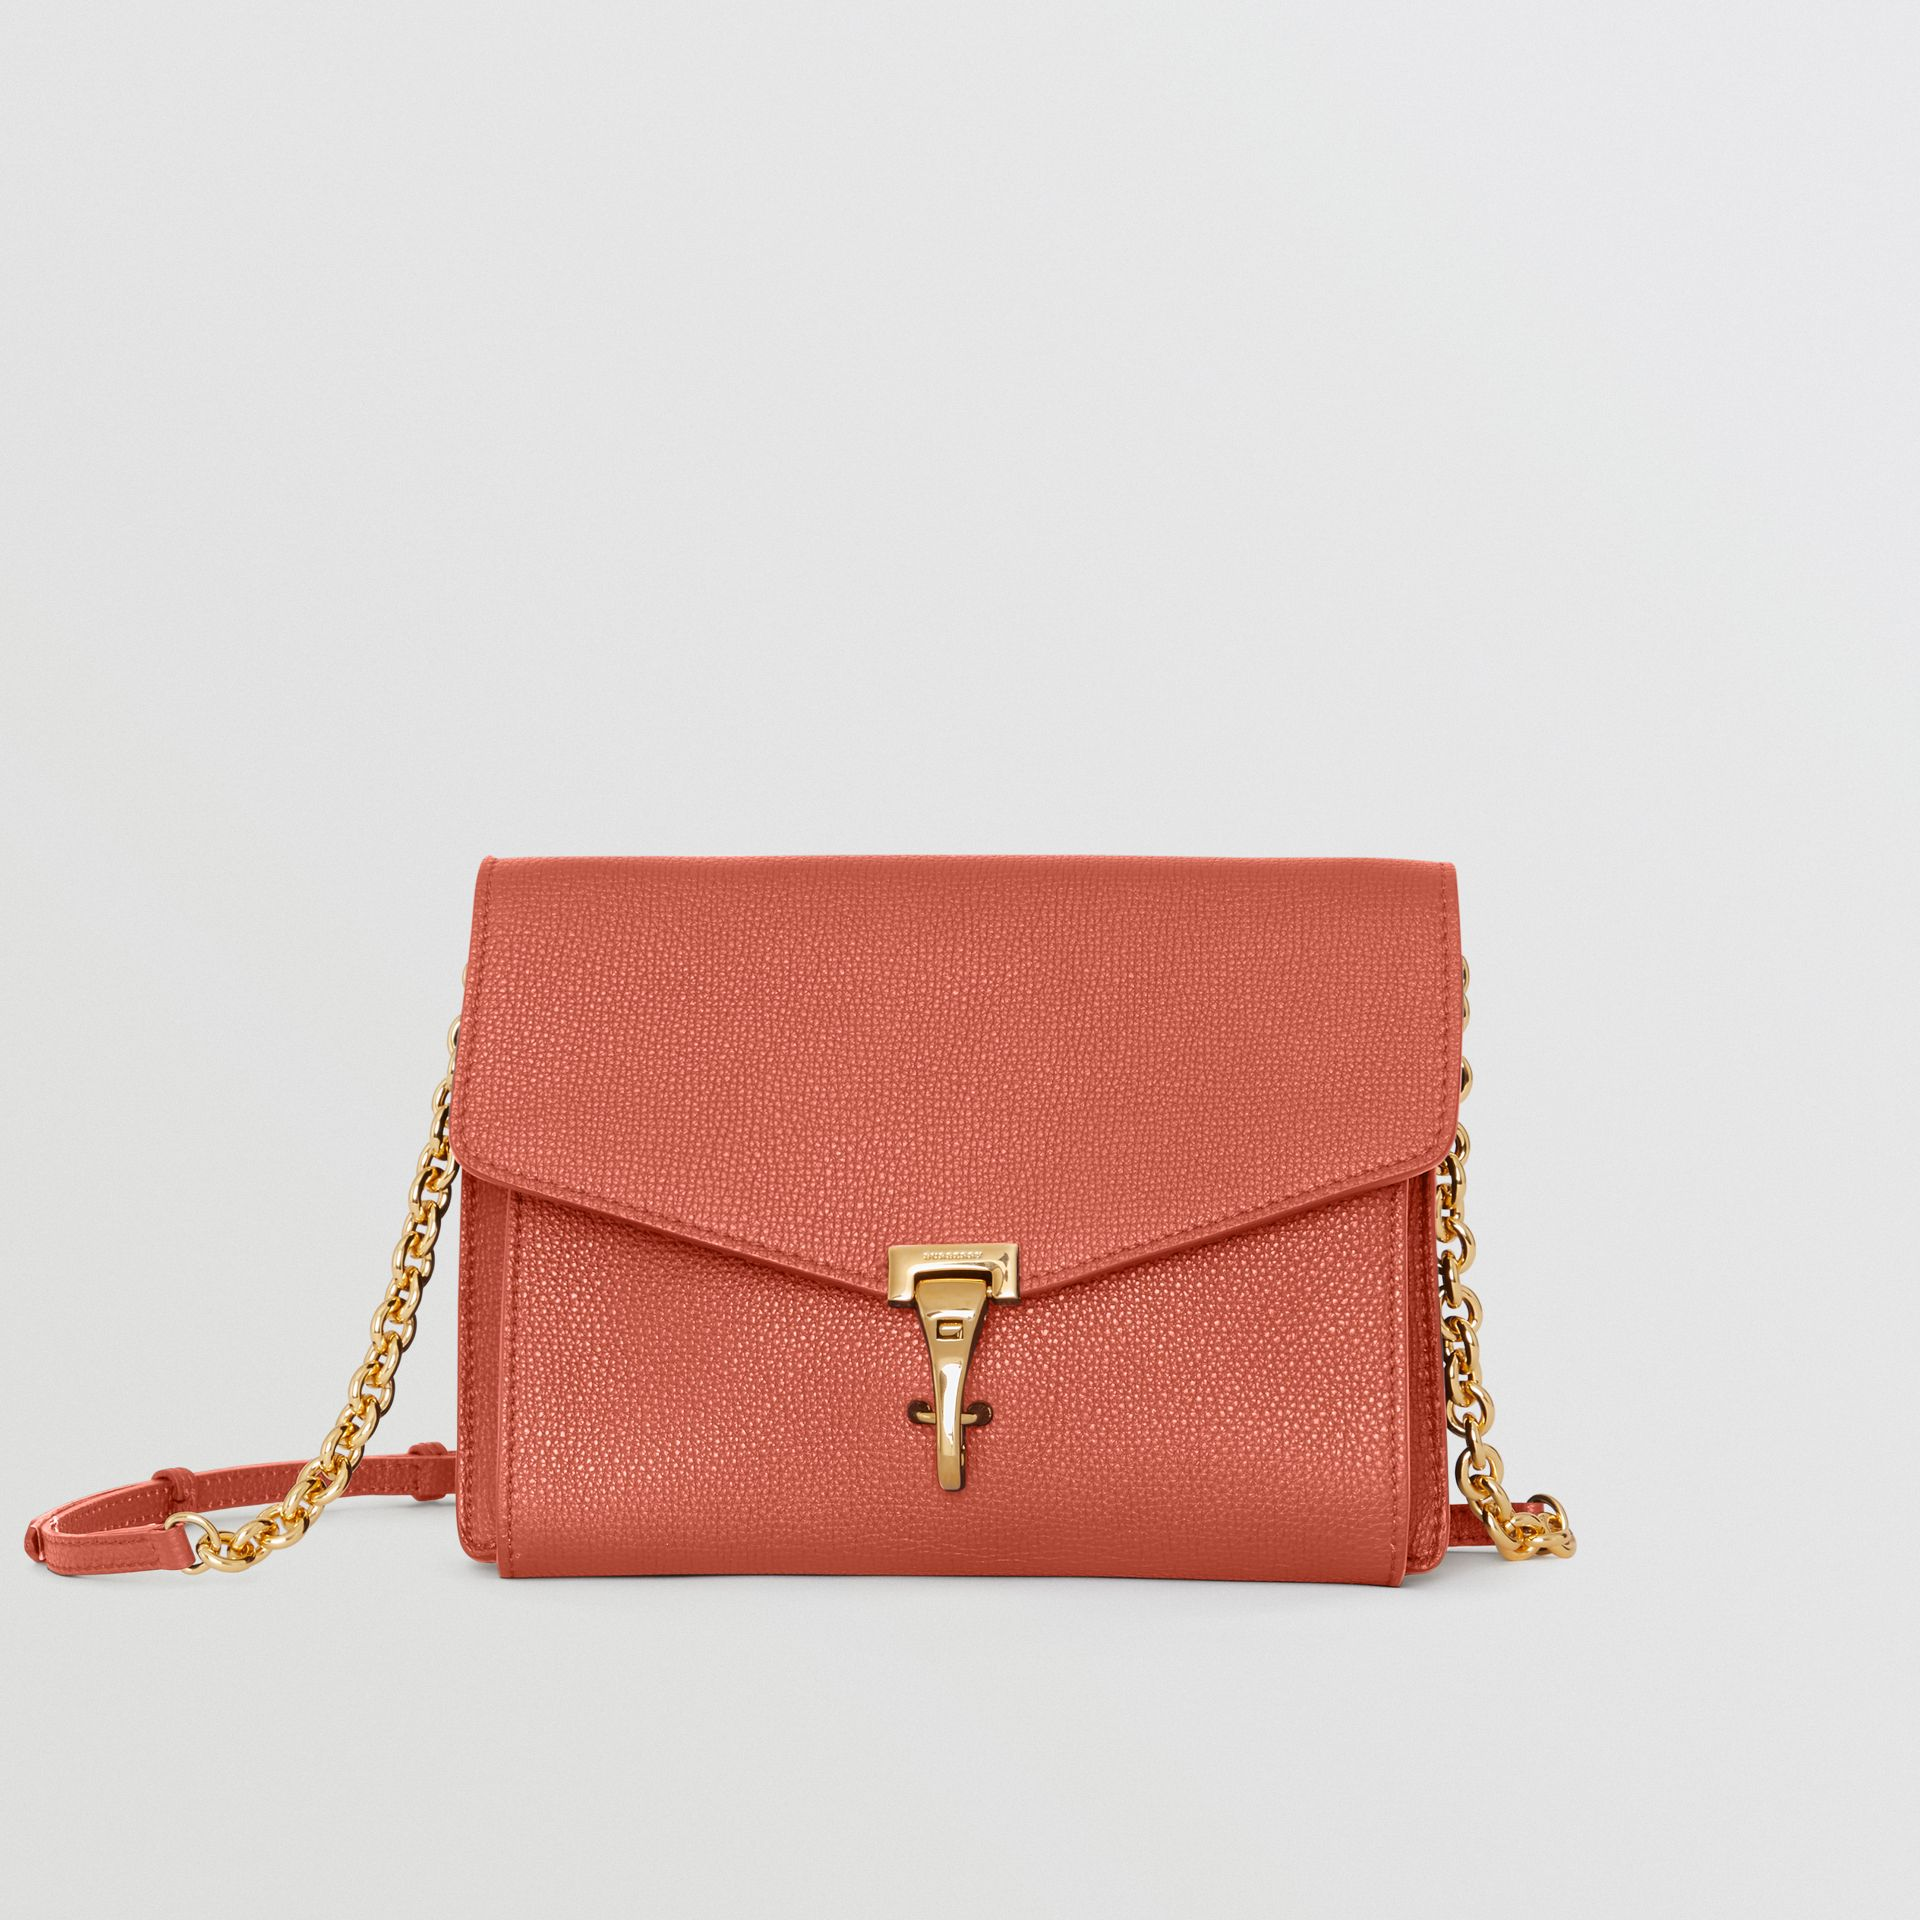 Small Leather Crossbody Bag in Cinnamon Red - Women | Burberry - gallery image 0